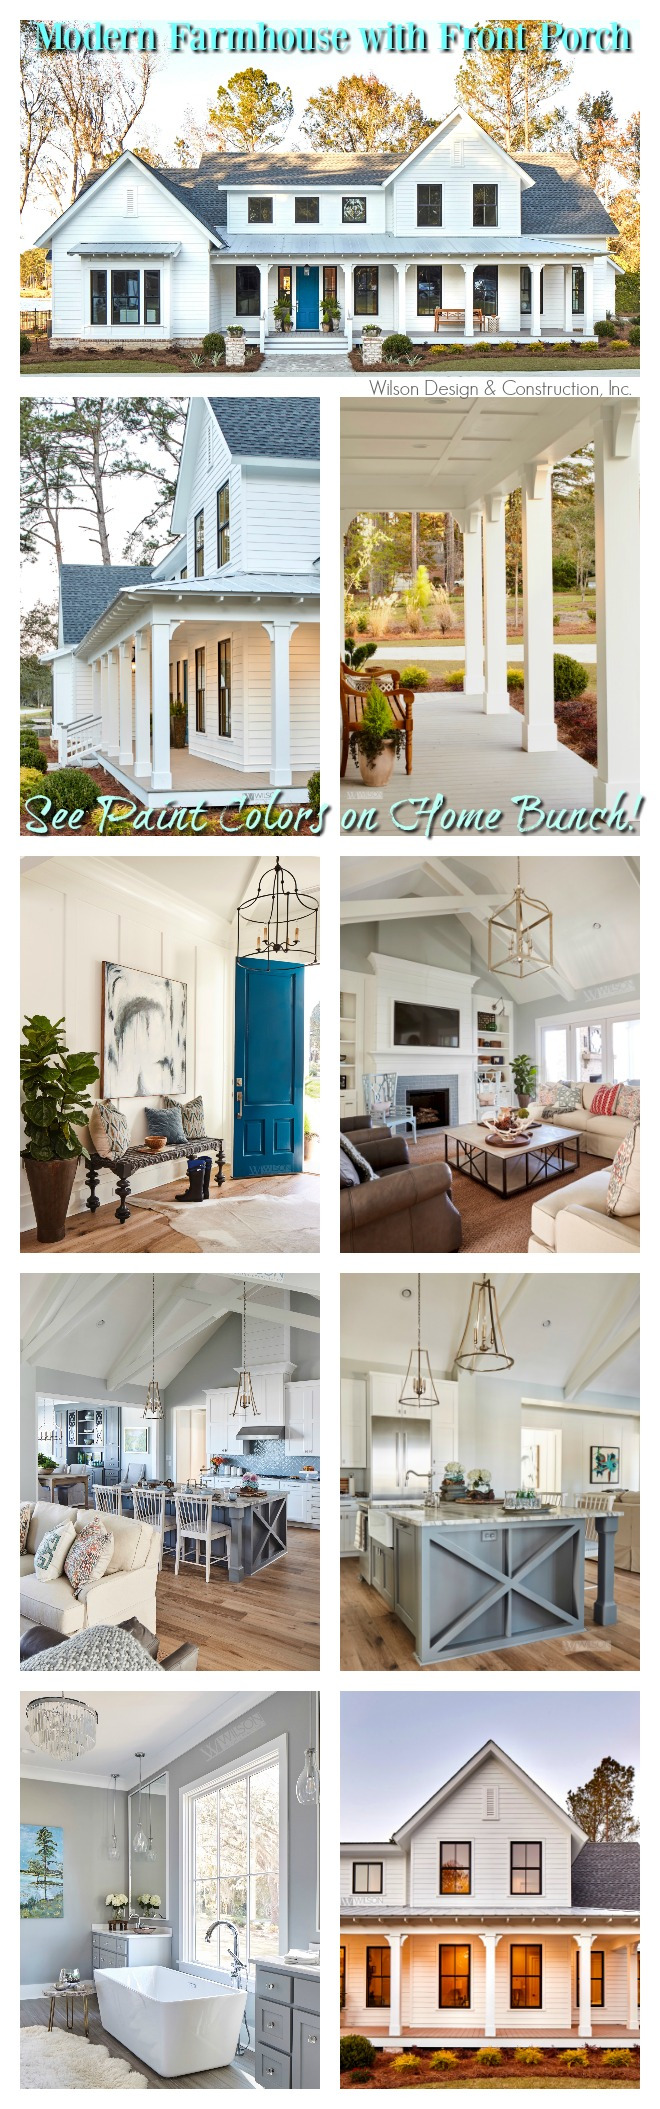 Modern Farmhouse with Front Porch Modern Farmhouse with Front Porch Modern Farmhouse with Front Porch #ModernFarmhouse #FarmhouseFrontPorch